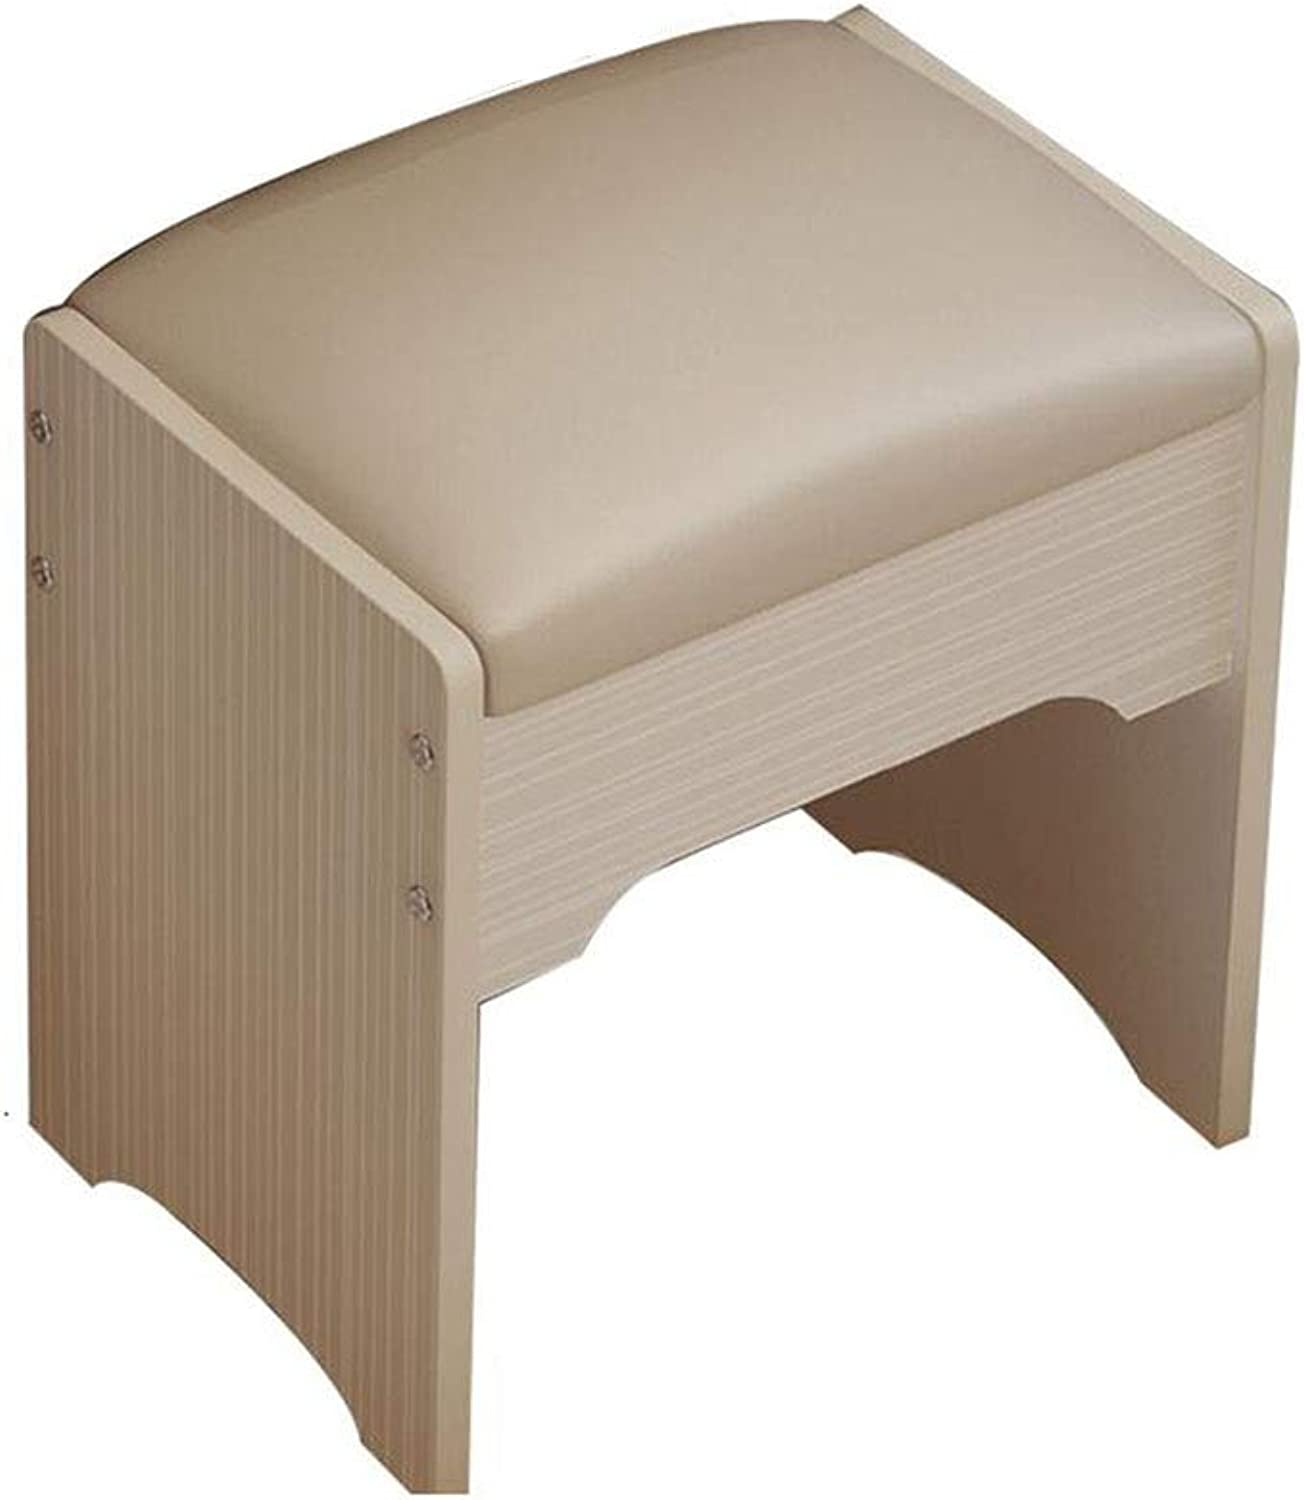 BYCSD Vanity Stool Bedroom Makeup Vanity Bench Piano Seat with Upholstered Seat (color   01)